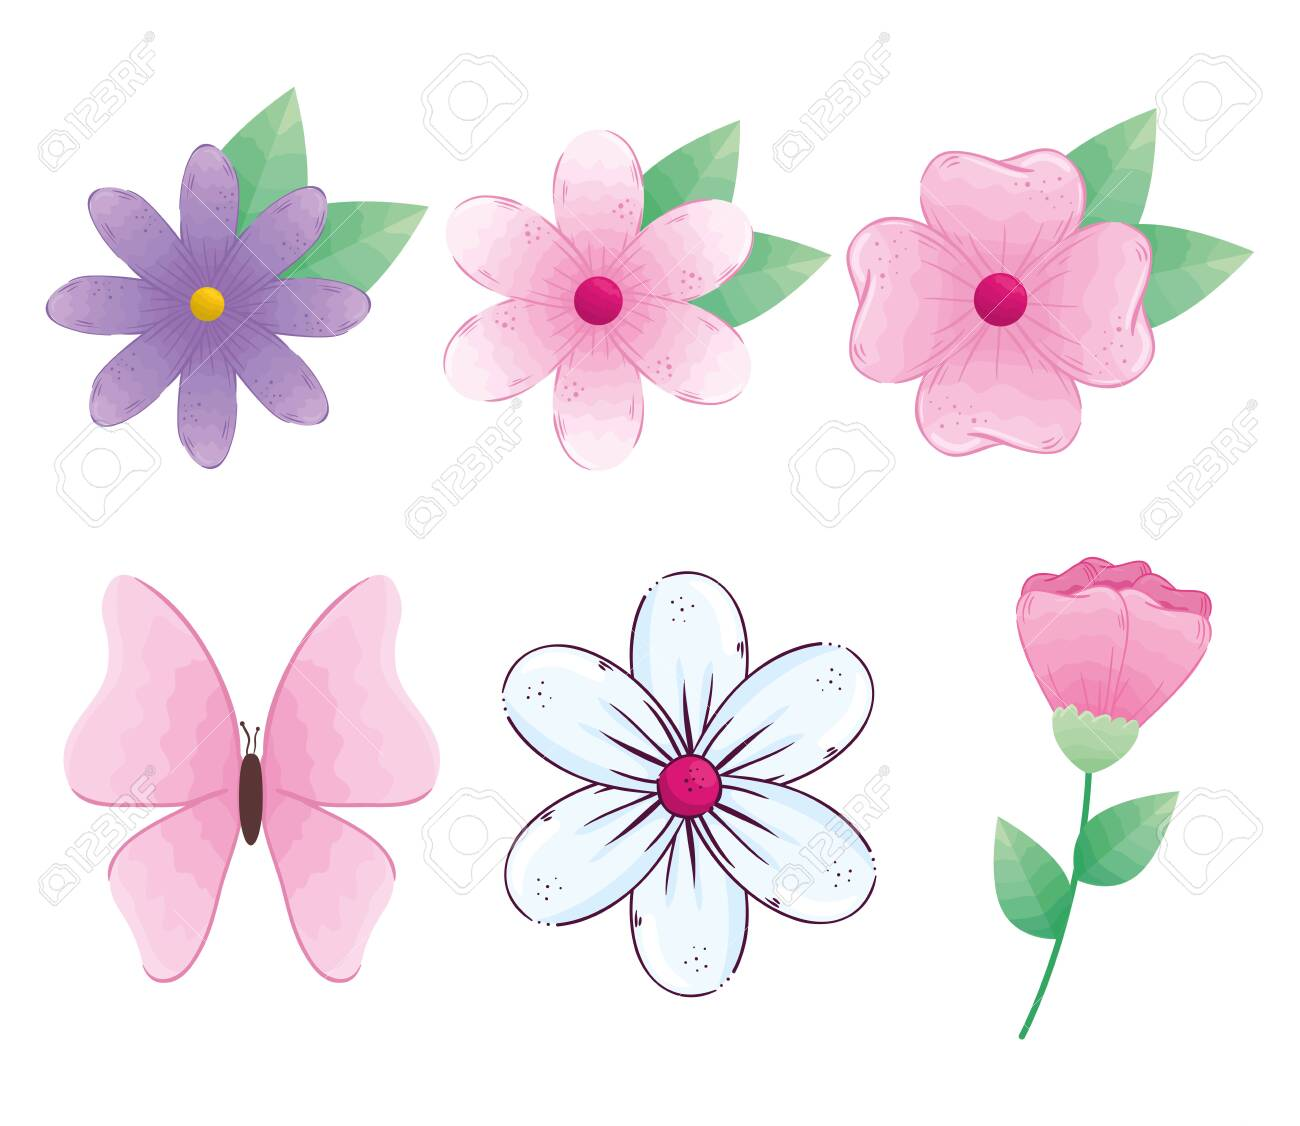 flowers with leaves and butterfly design, natural floral nature plant ornament garden decoration and botany theme Vector illustration - 154417763